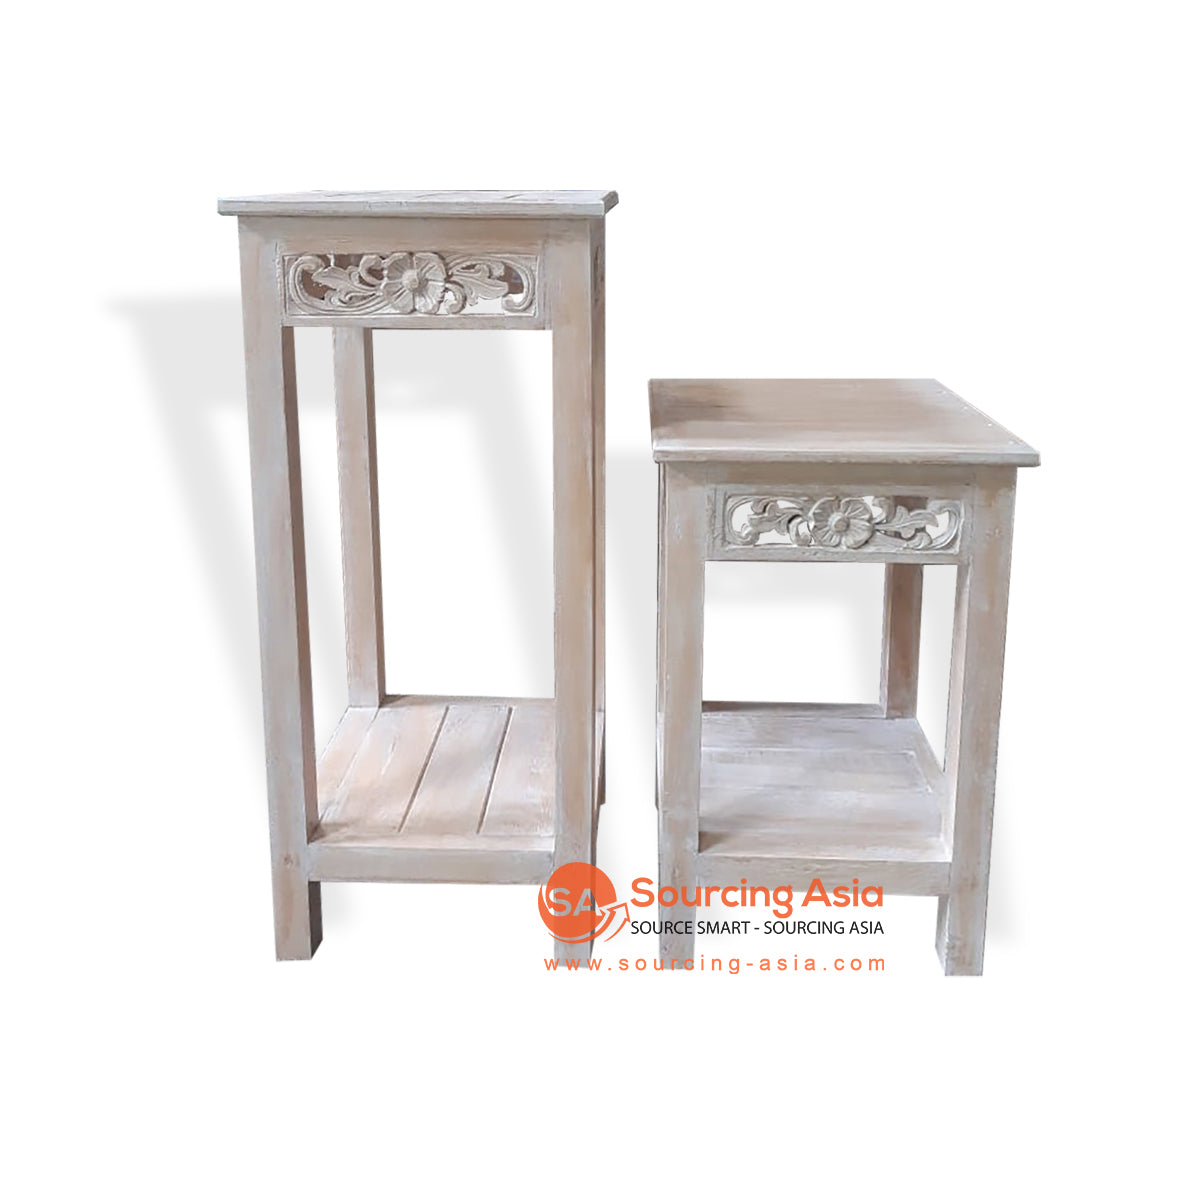 THE007-5 SET OF 2 CONSOLE BROWN WASH